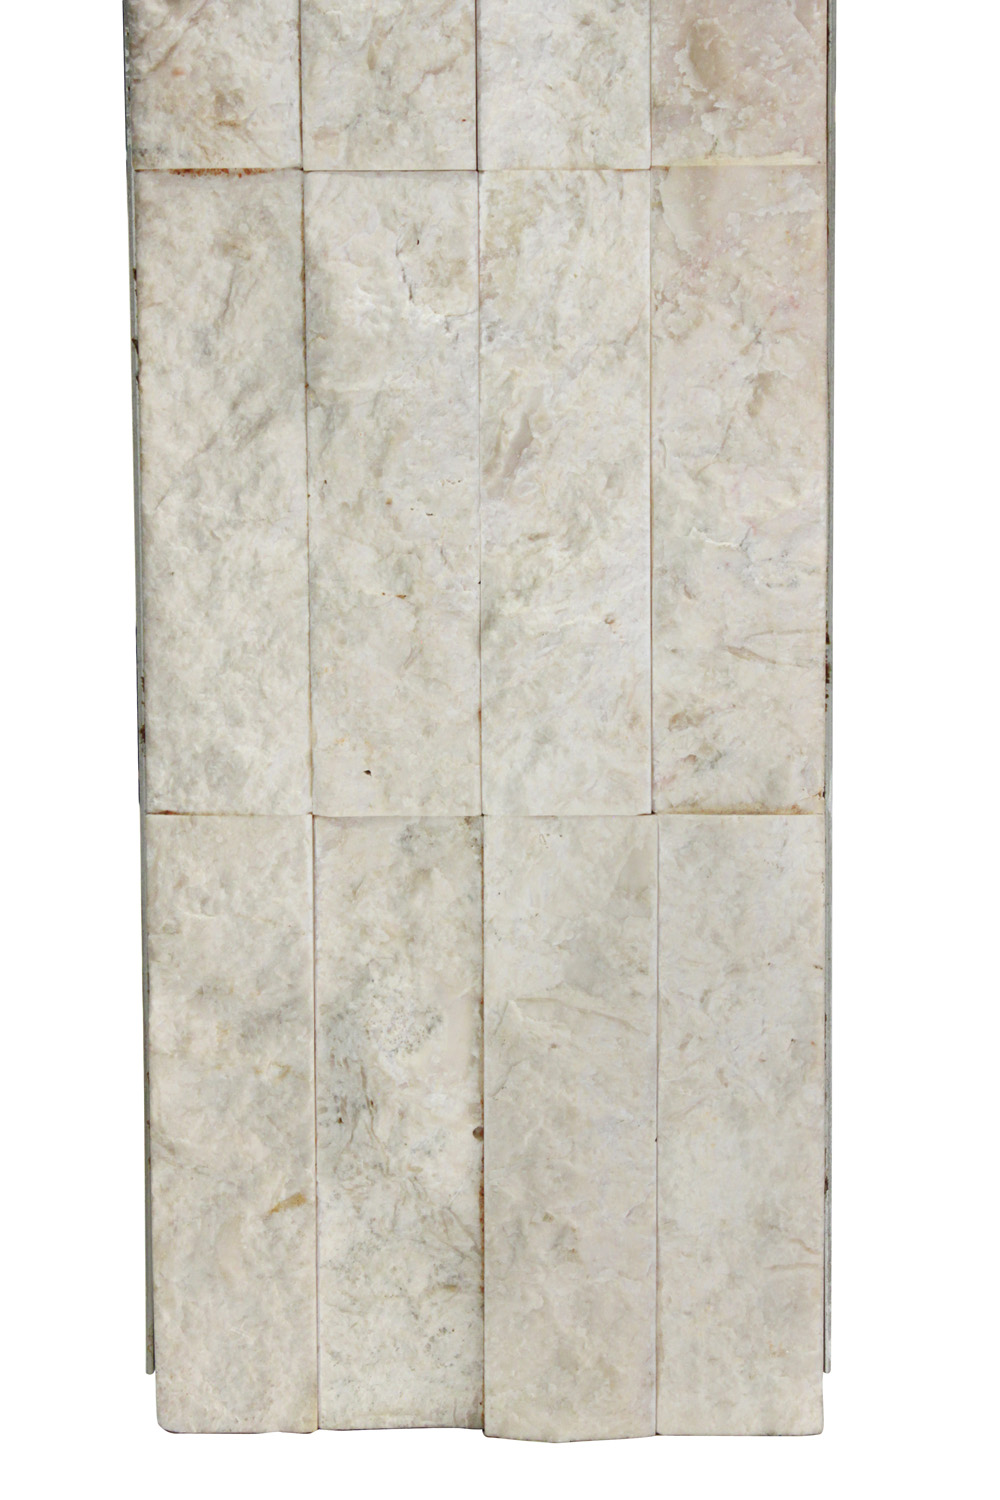 70's 45 ivory flagstone+brushed s tablelamps336 detail3 hires.jpg